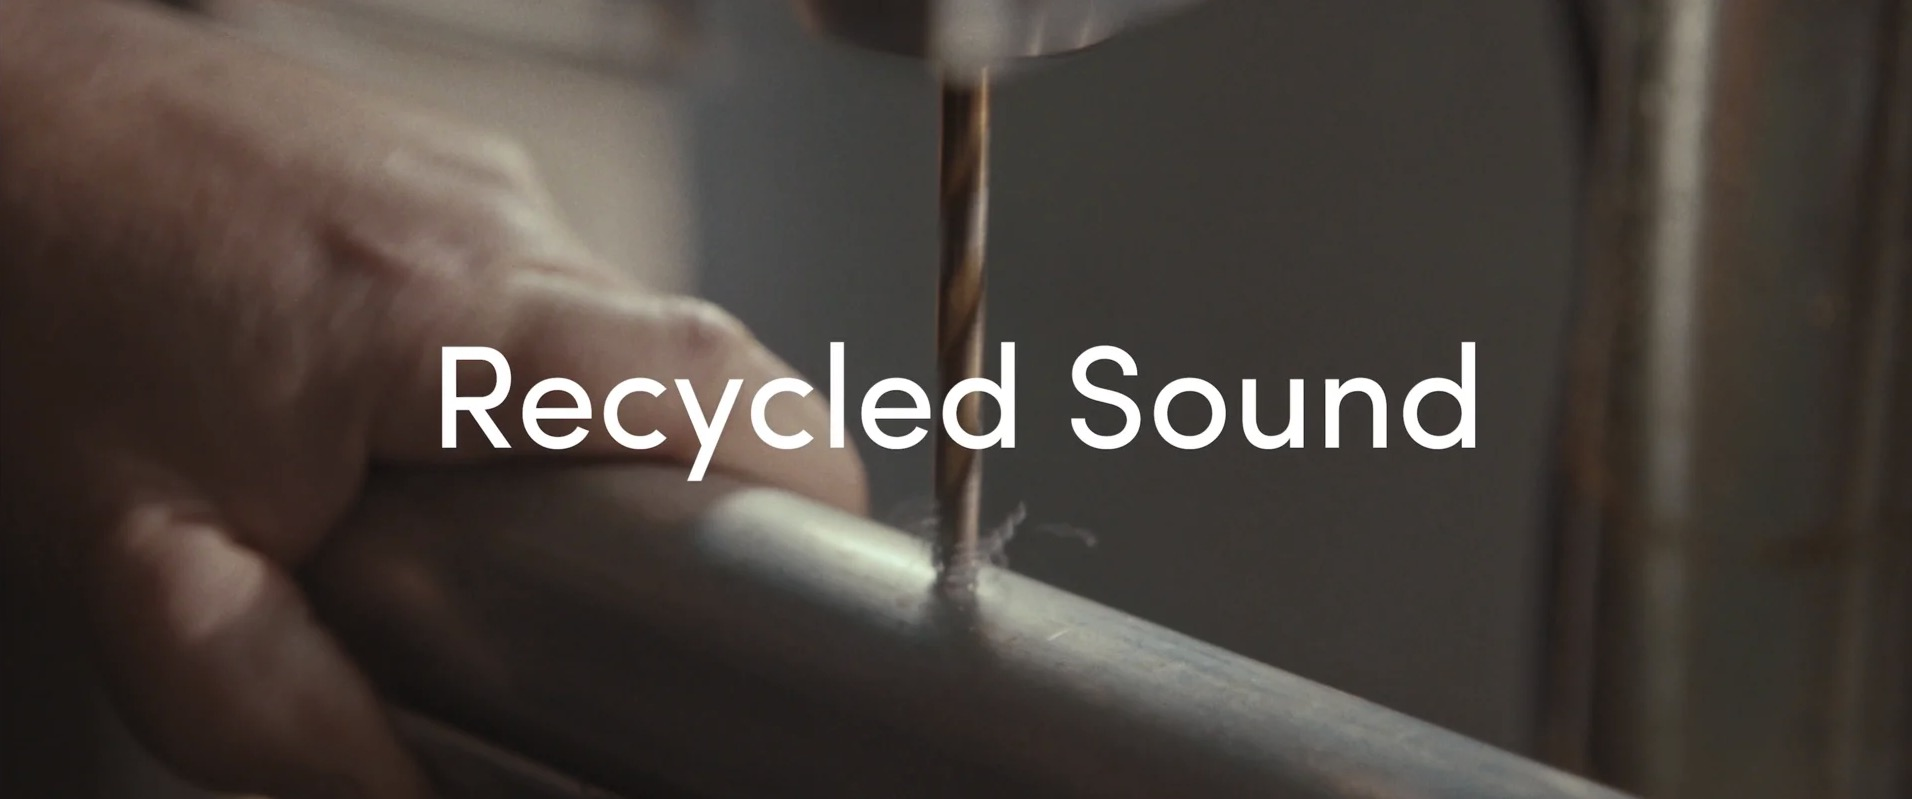 Recycled Sound 1